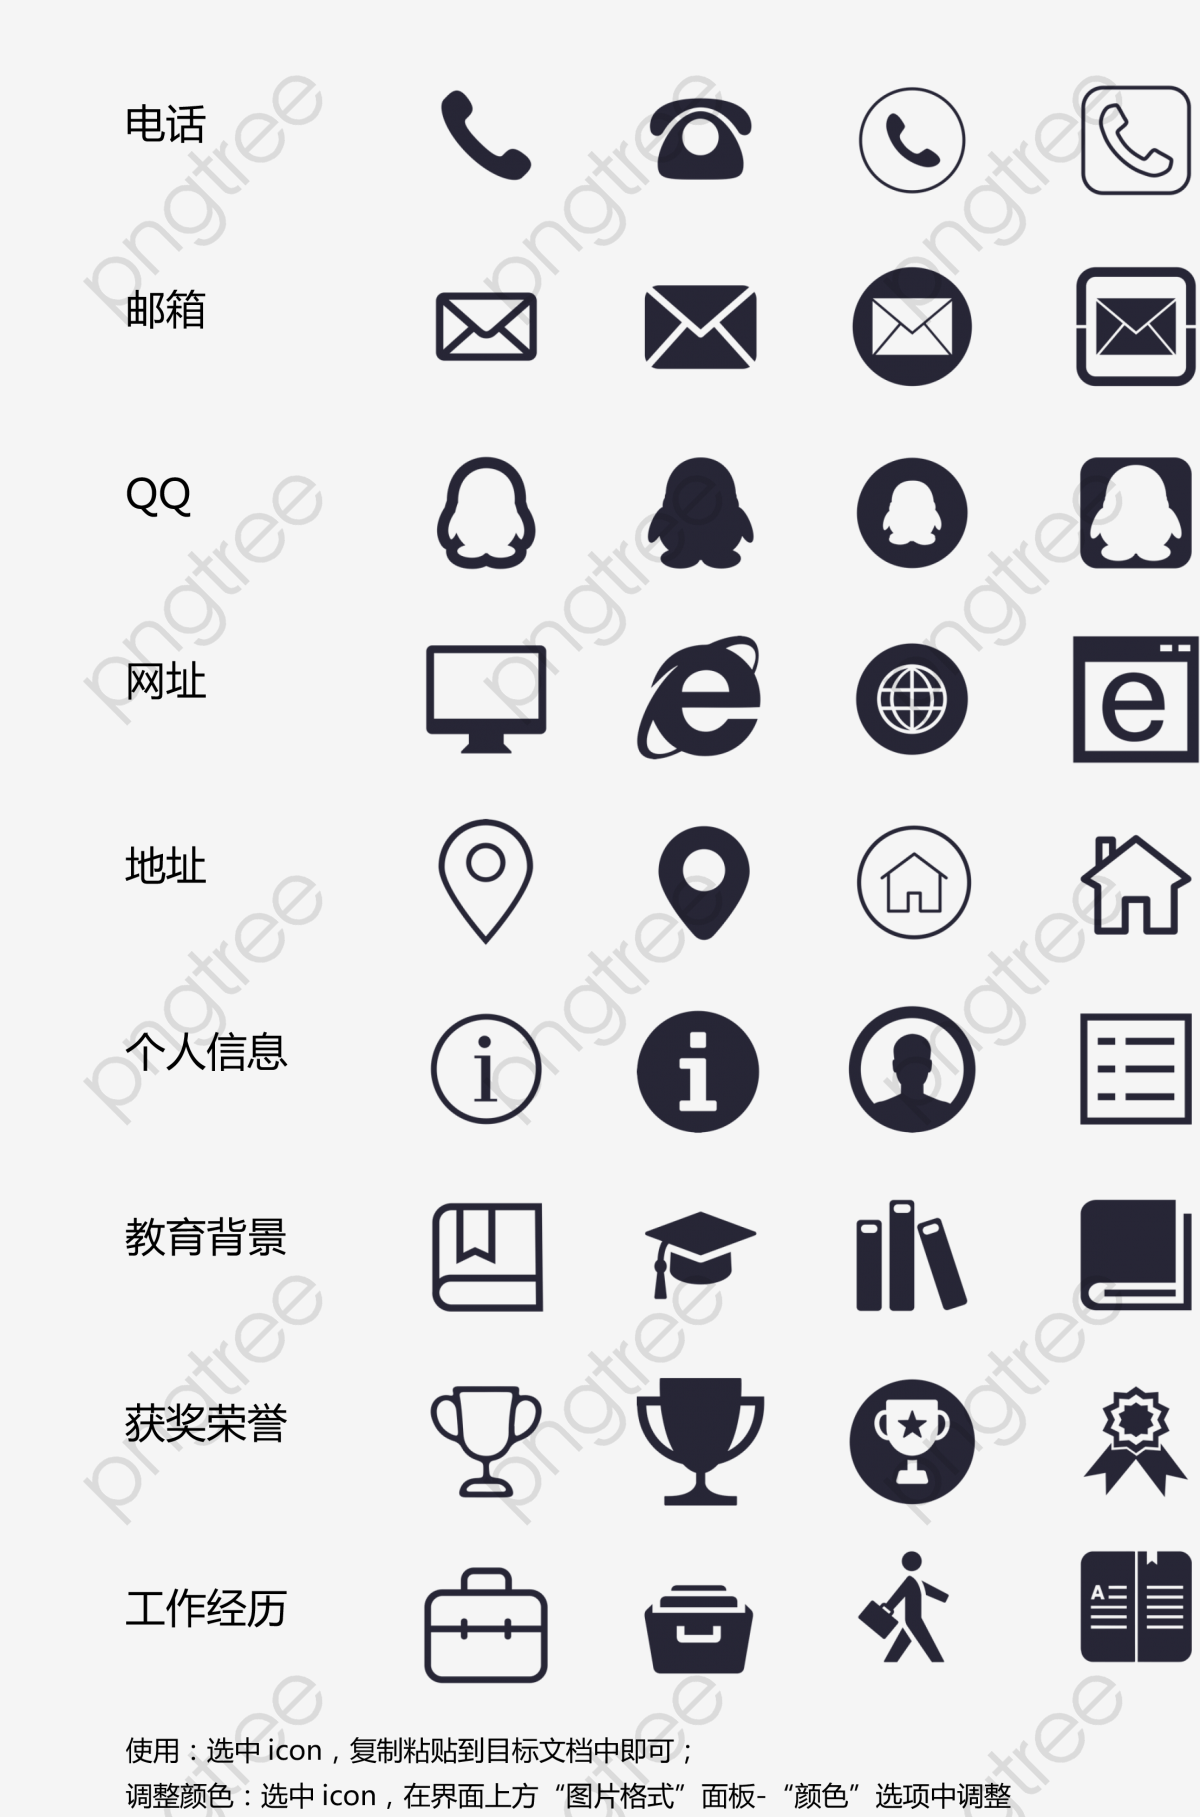 Cv Contacts Icon Element, Mark, Contact, Icon PNG Transparent Image.